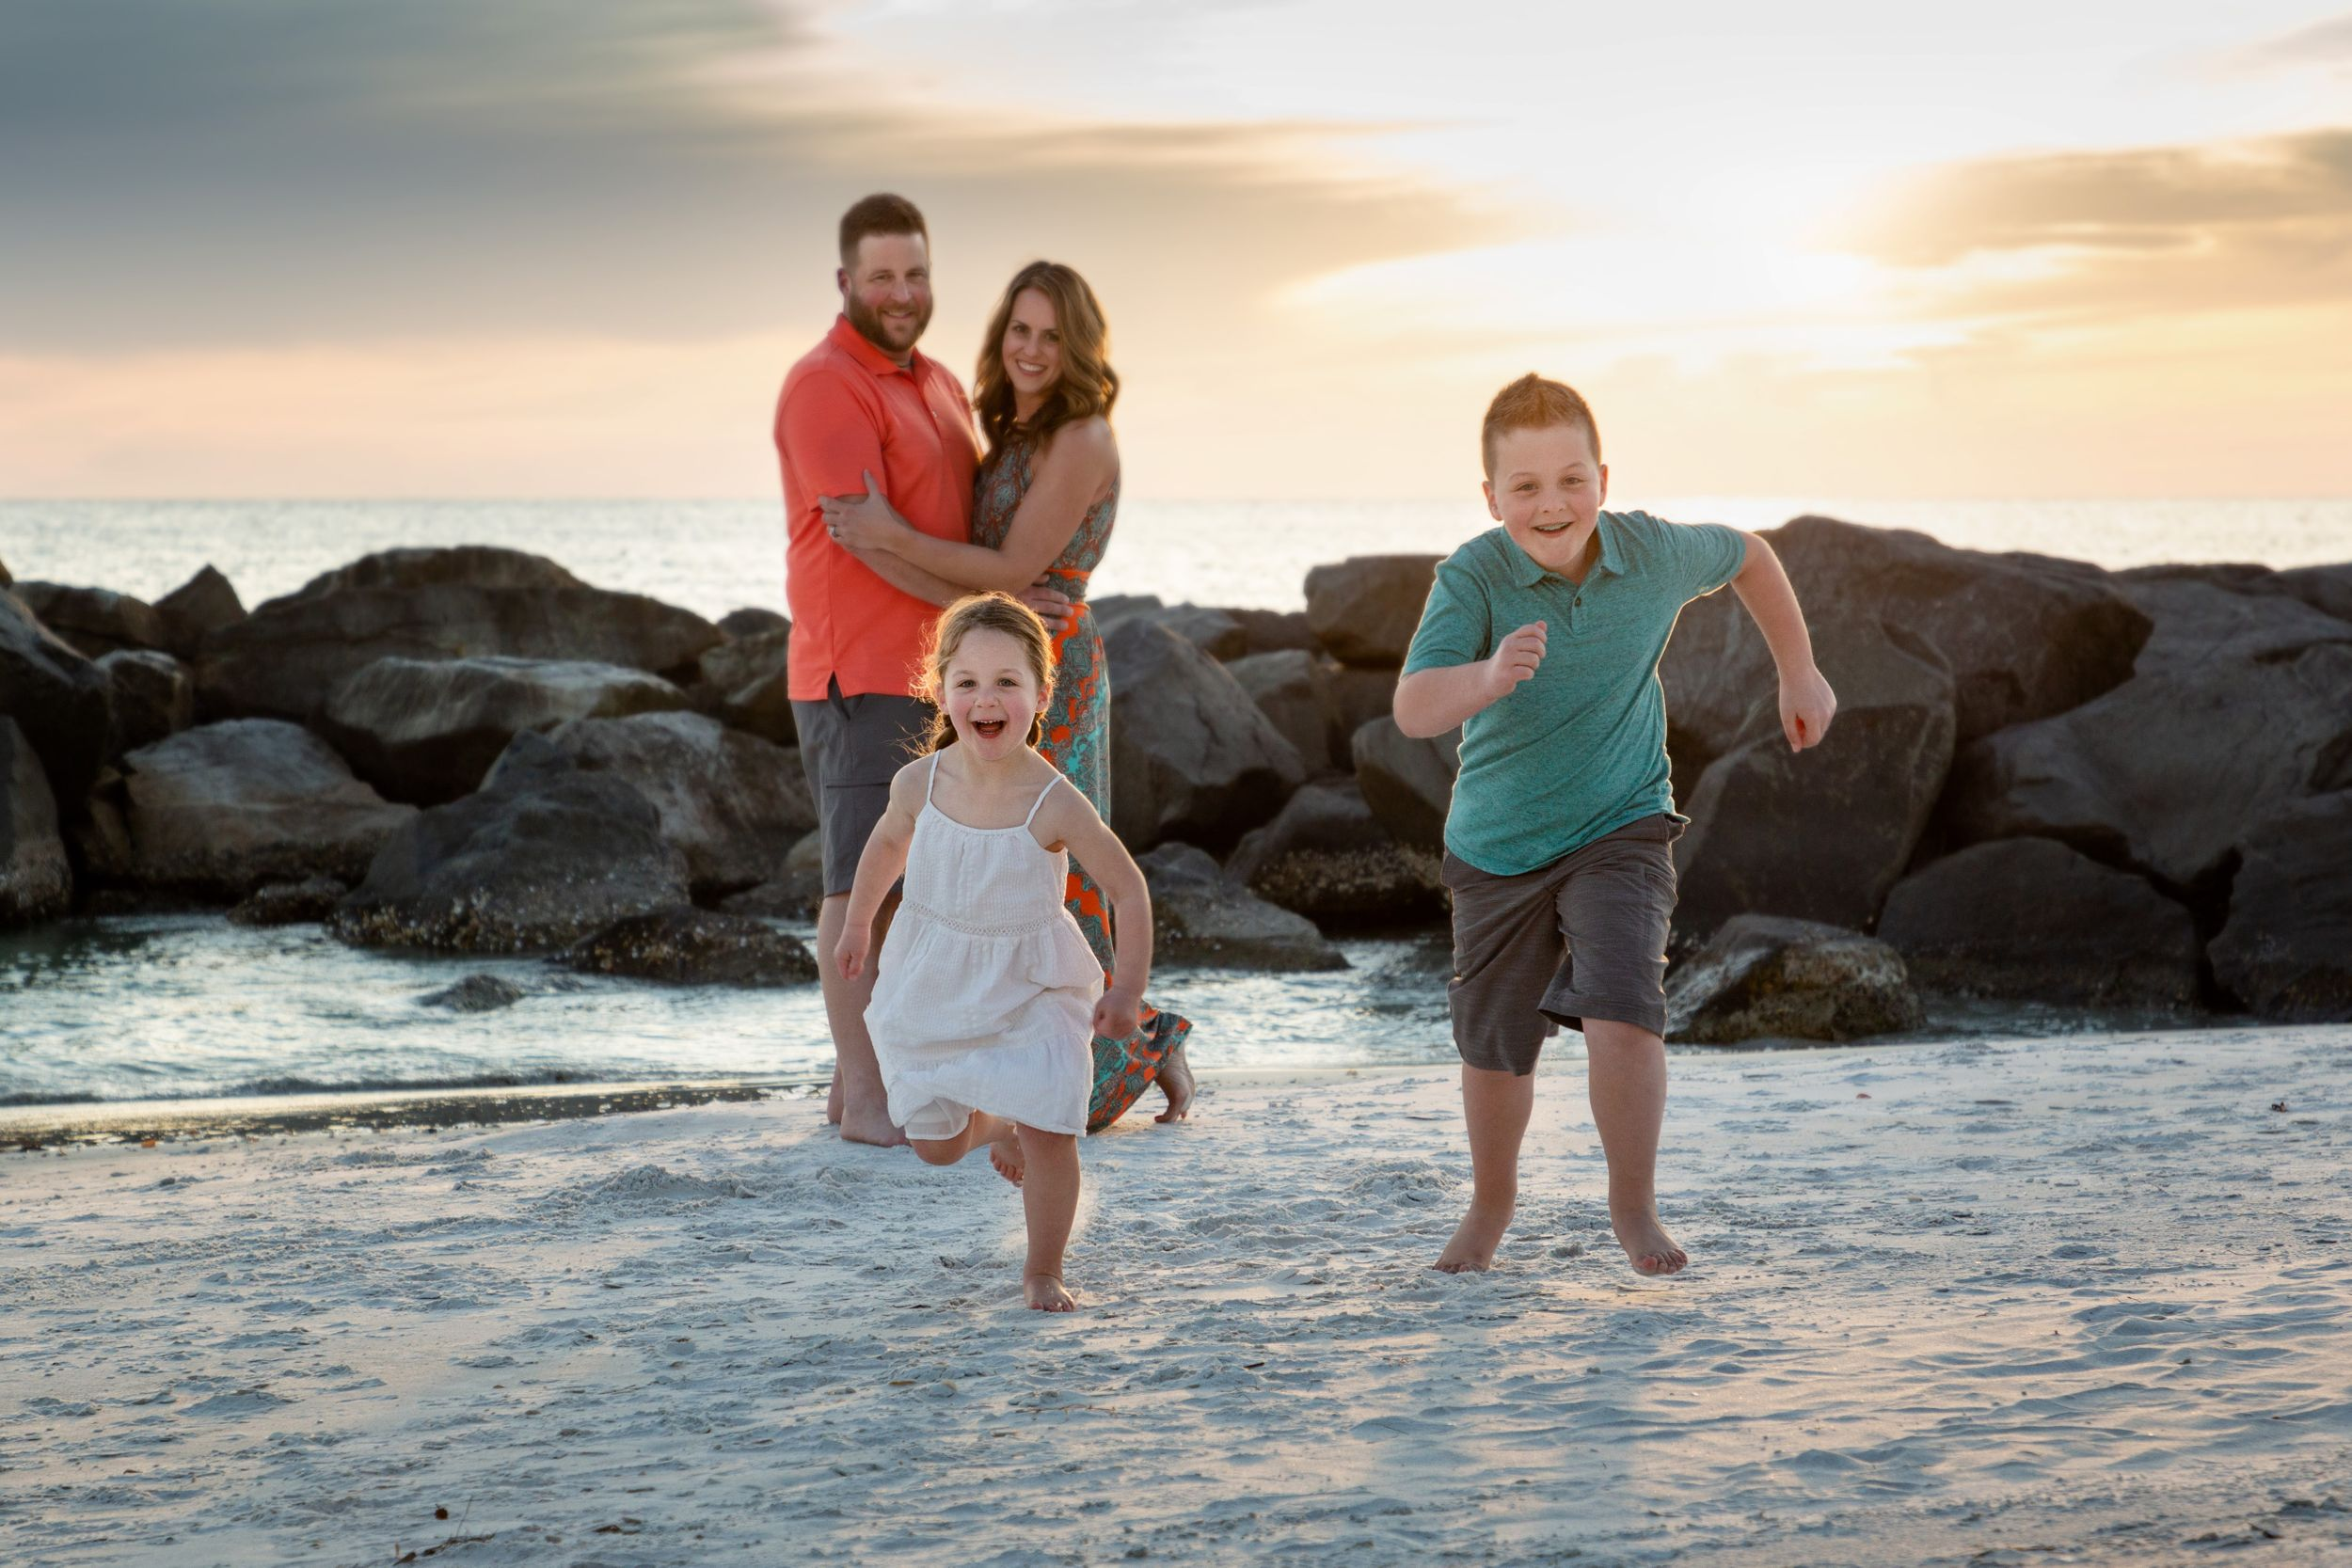 abundant grace photography , affordable family photography, clearwater beach photography